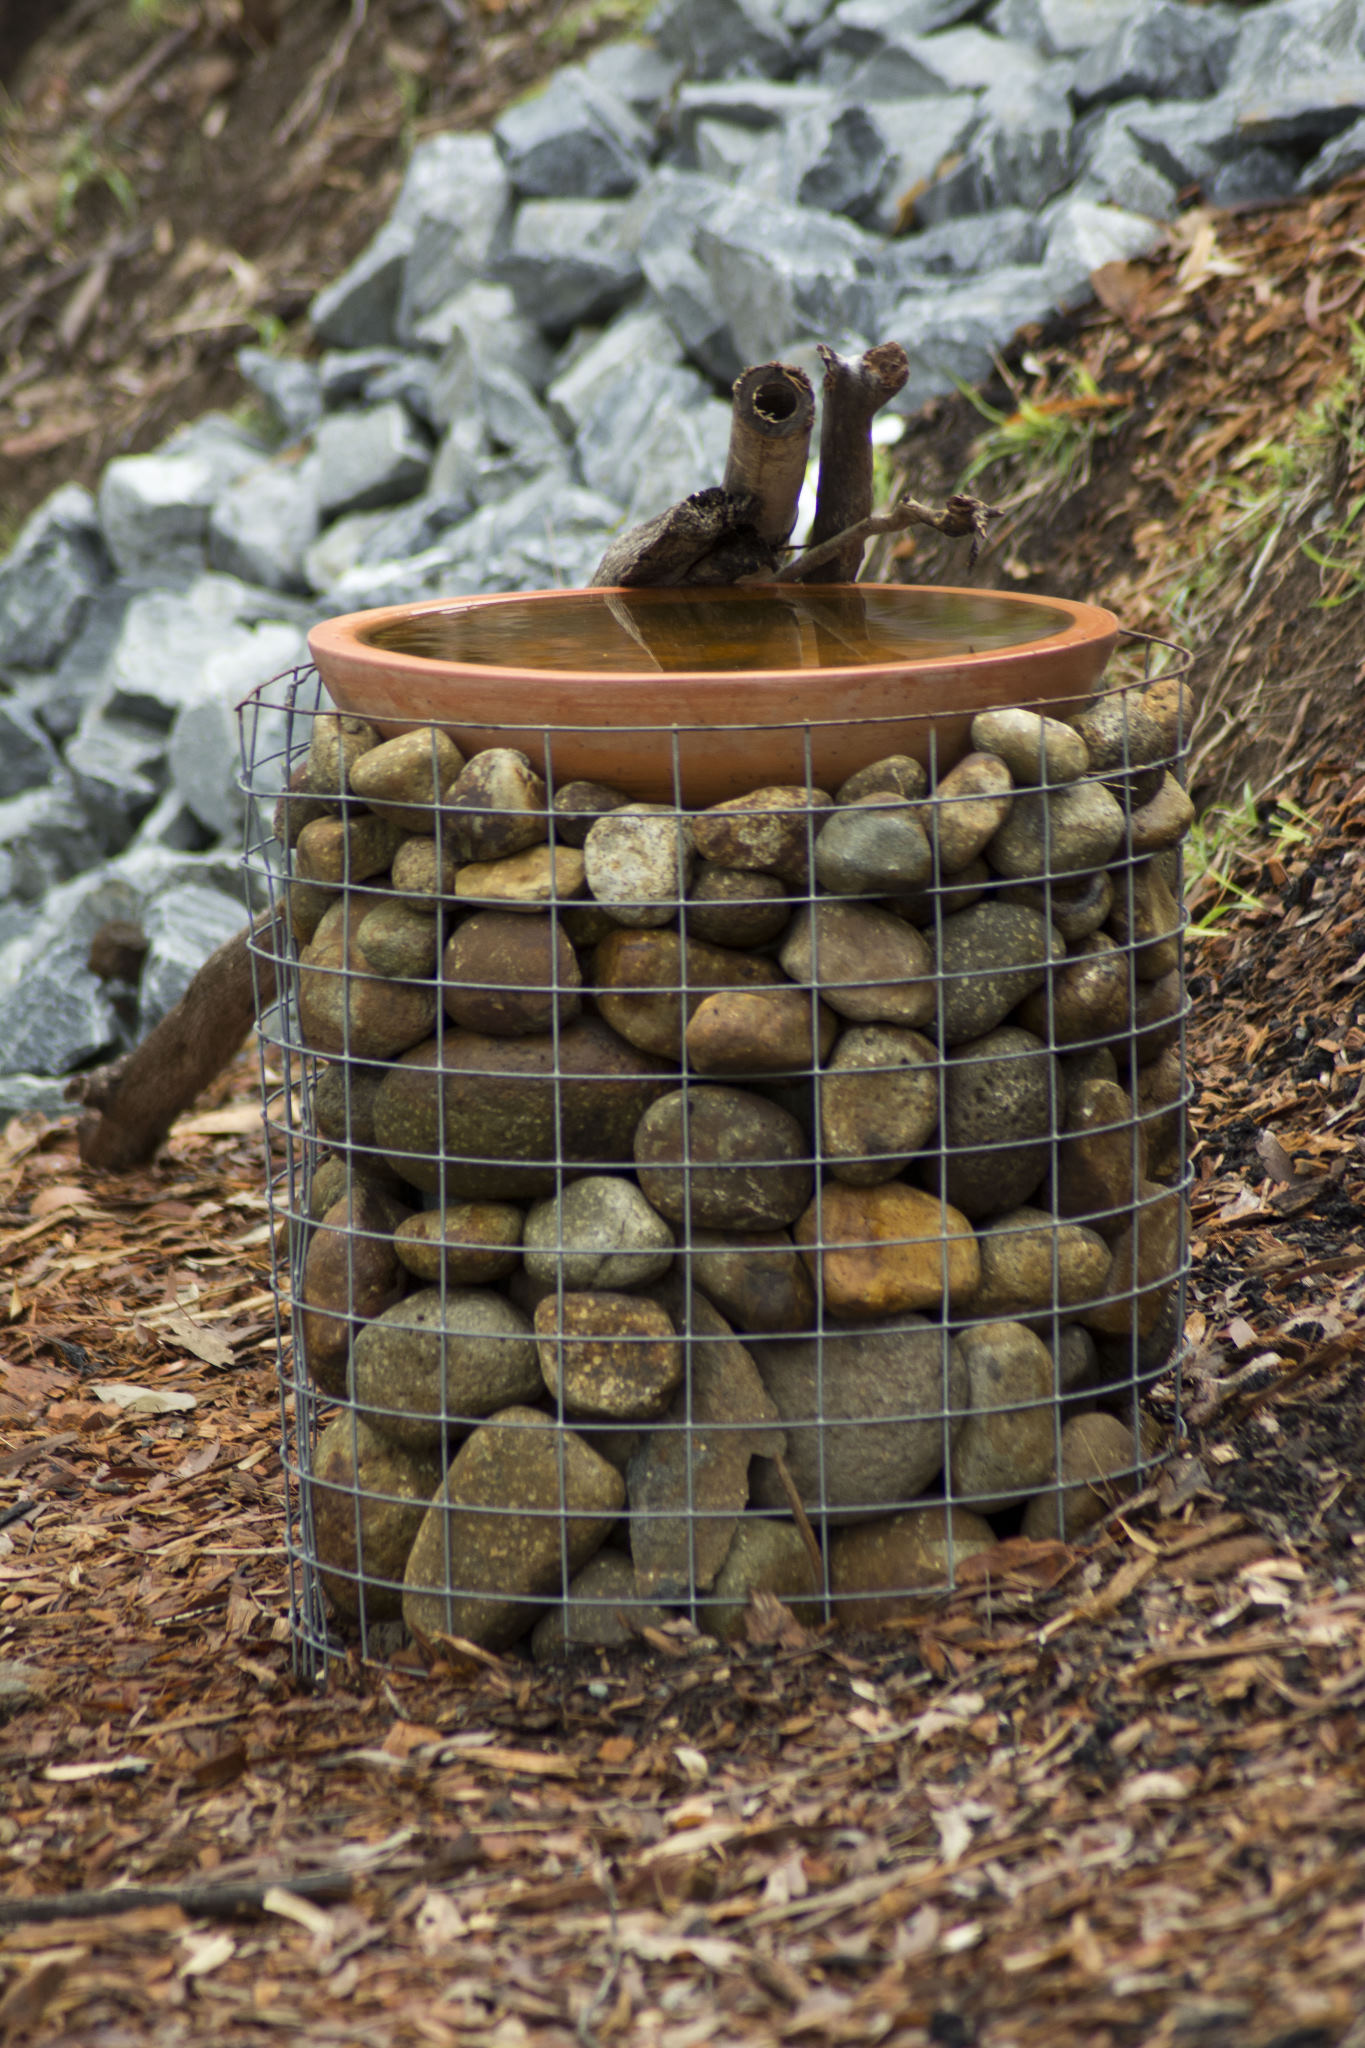 Our new 'gabion' water habitat